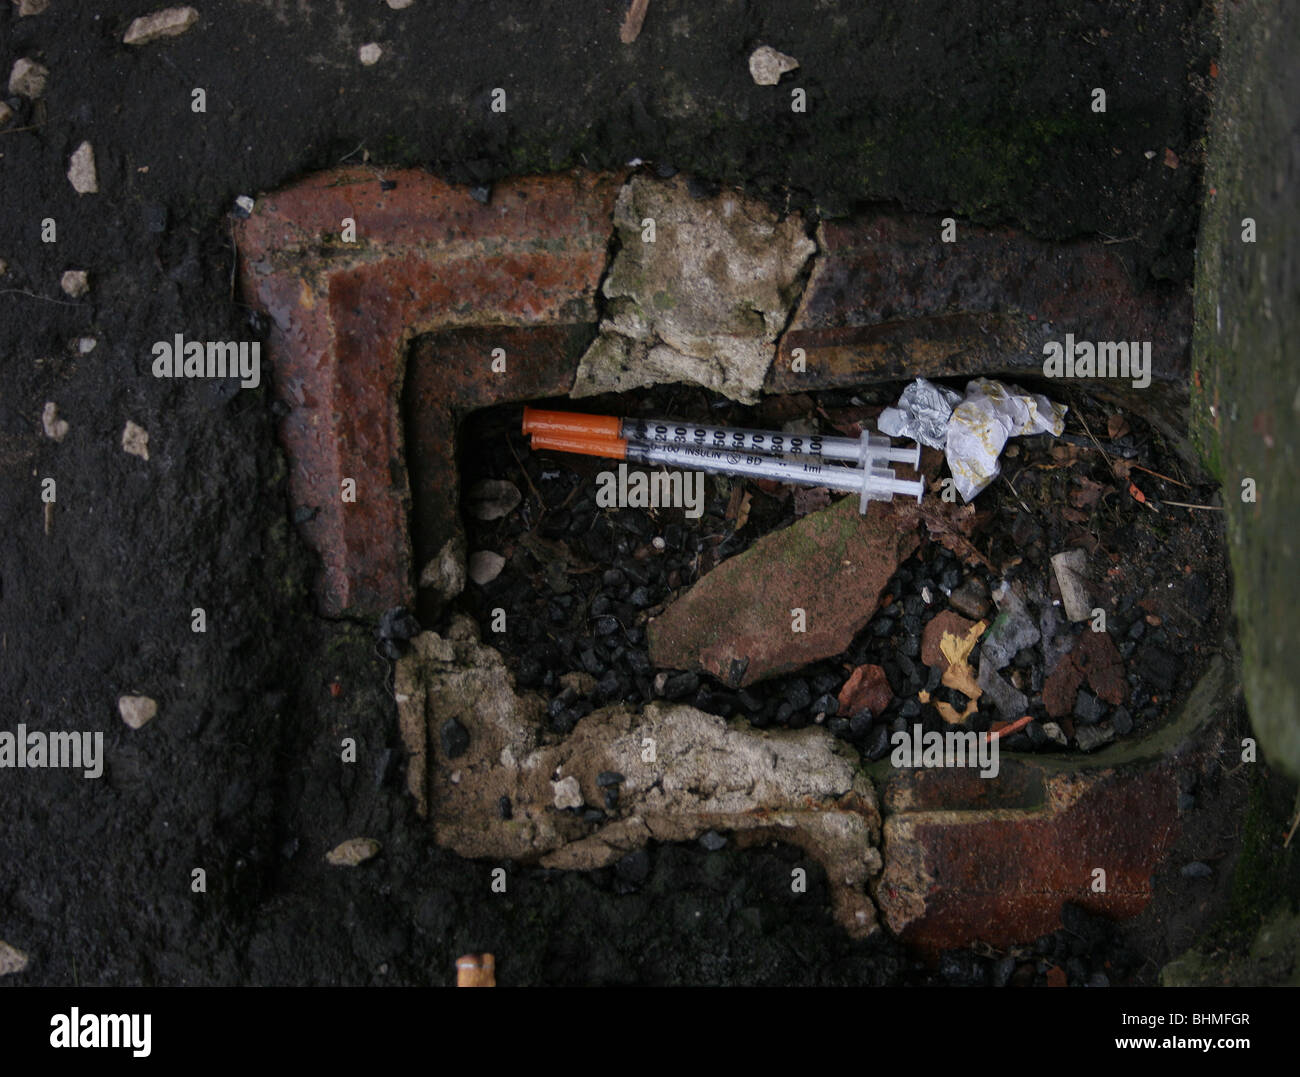 hypodermic Needle found in Street - Stock Image